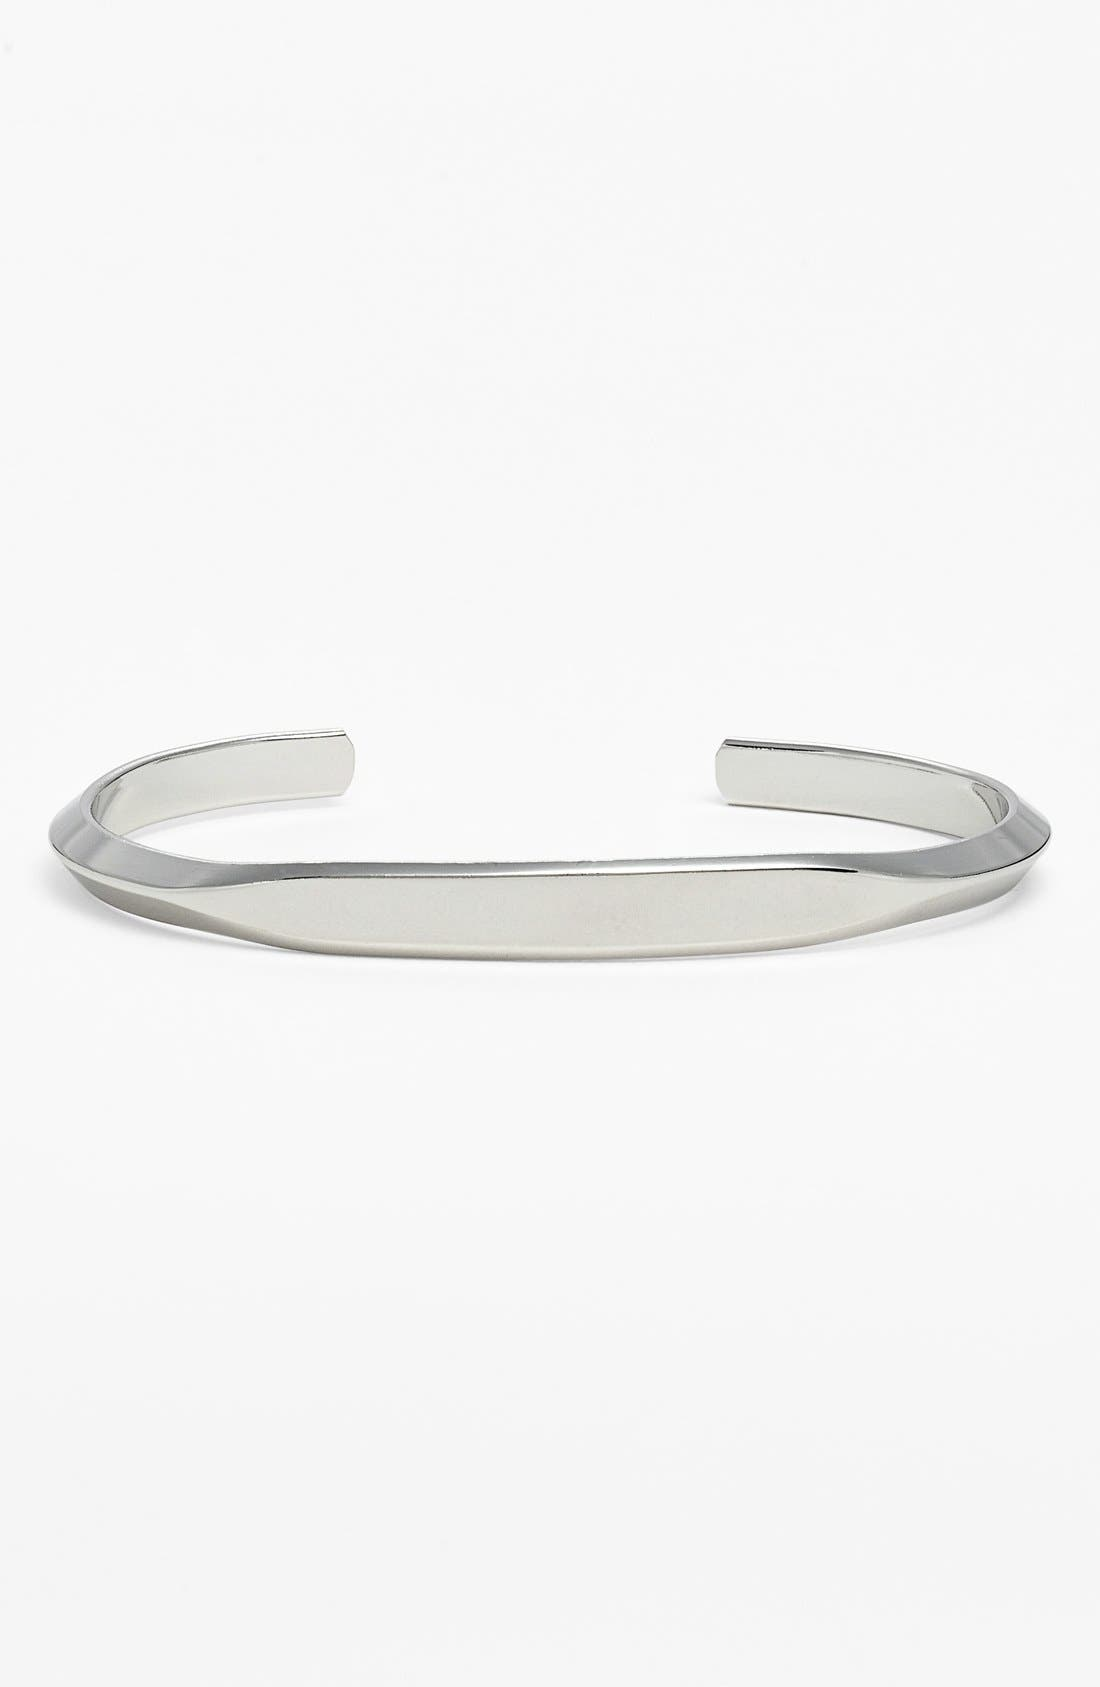 Alternate Image 1 Selected - Jules Smith Cuff Bracelet